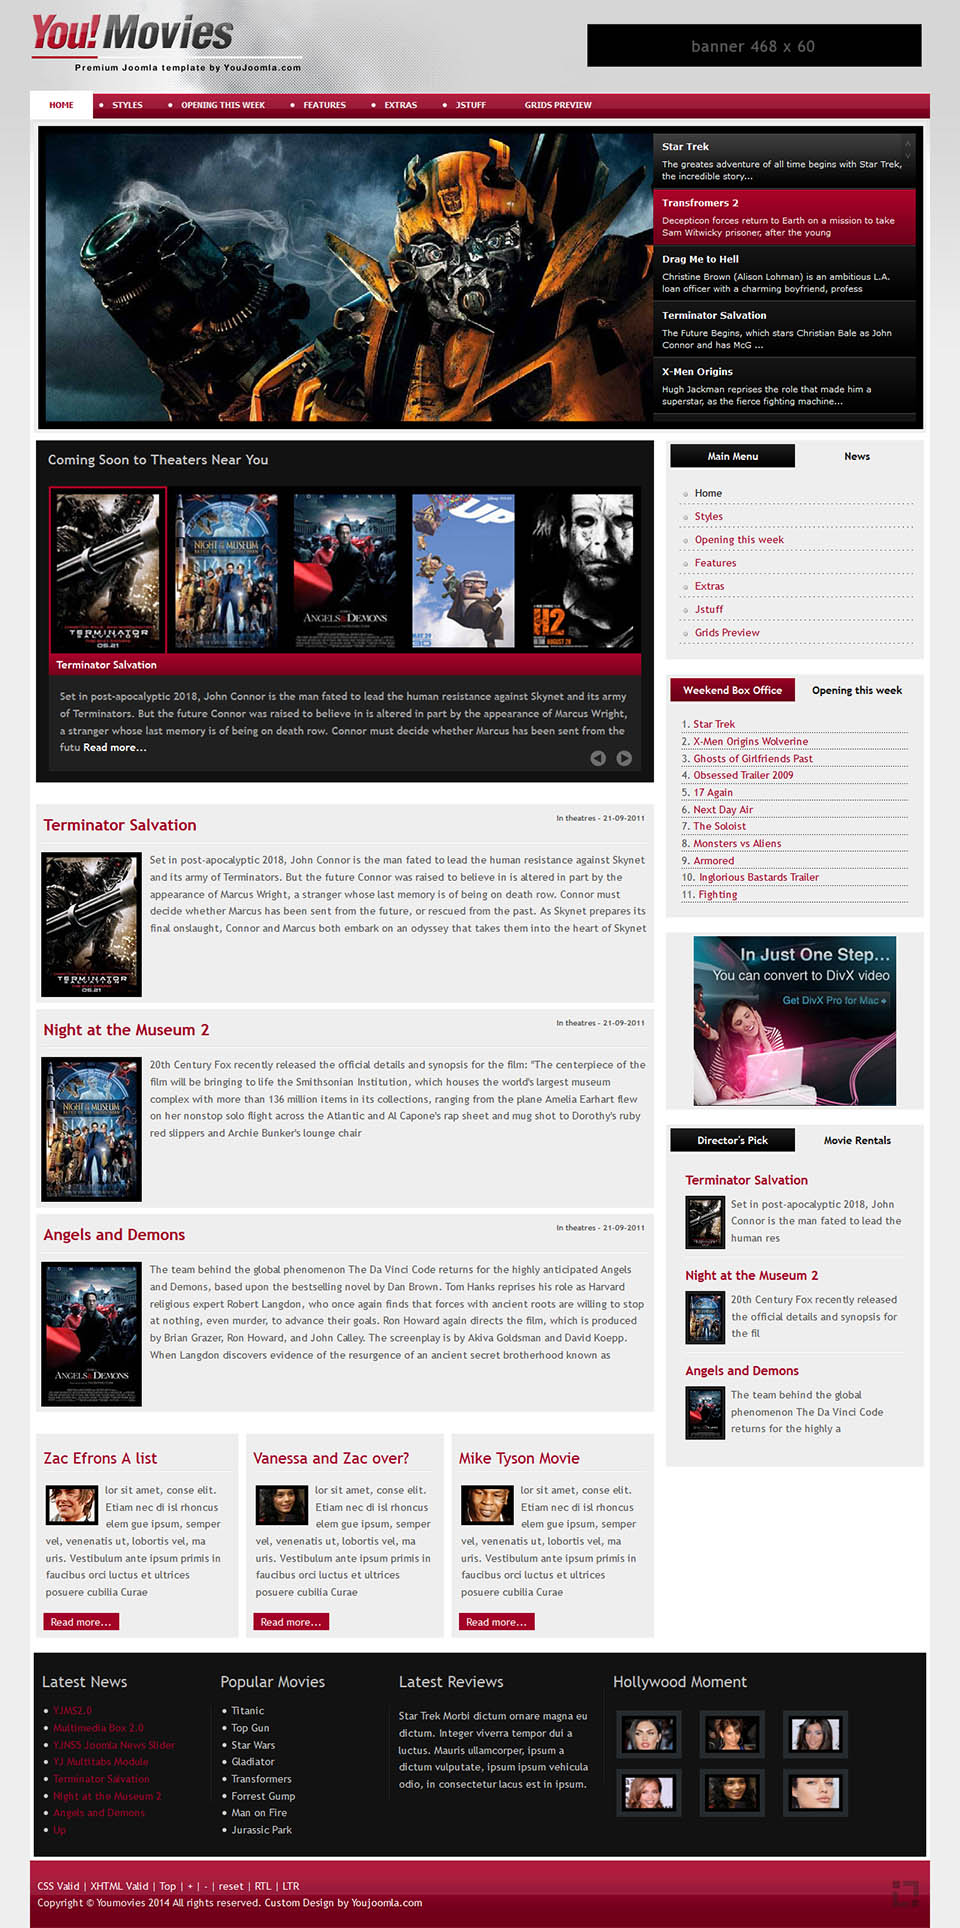 Youjoomla Youmovies V103 A Portal Template About The Movie For